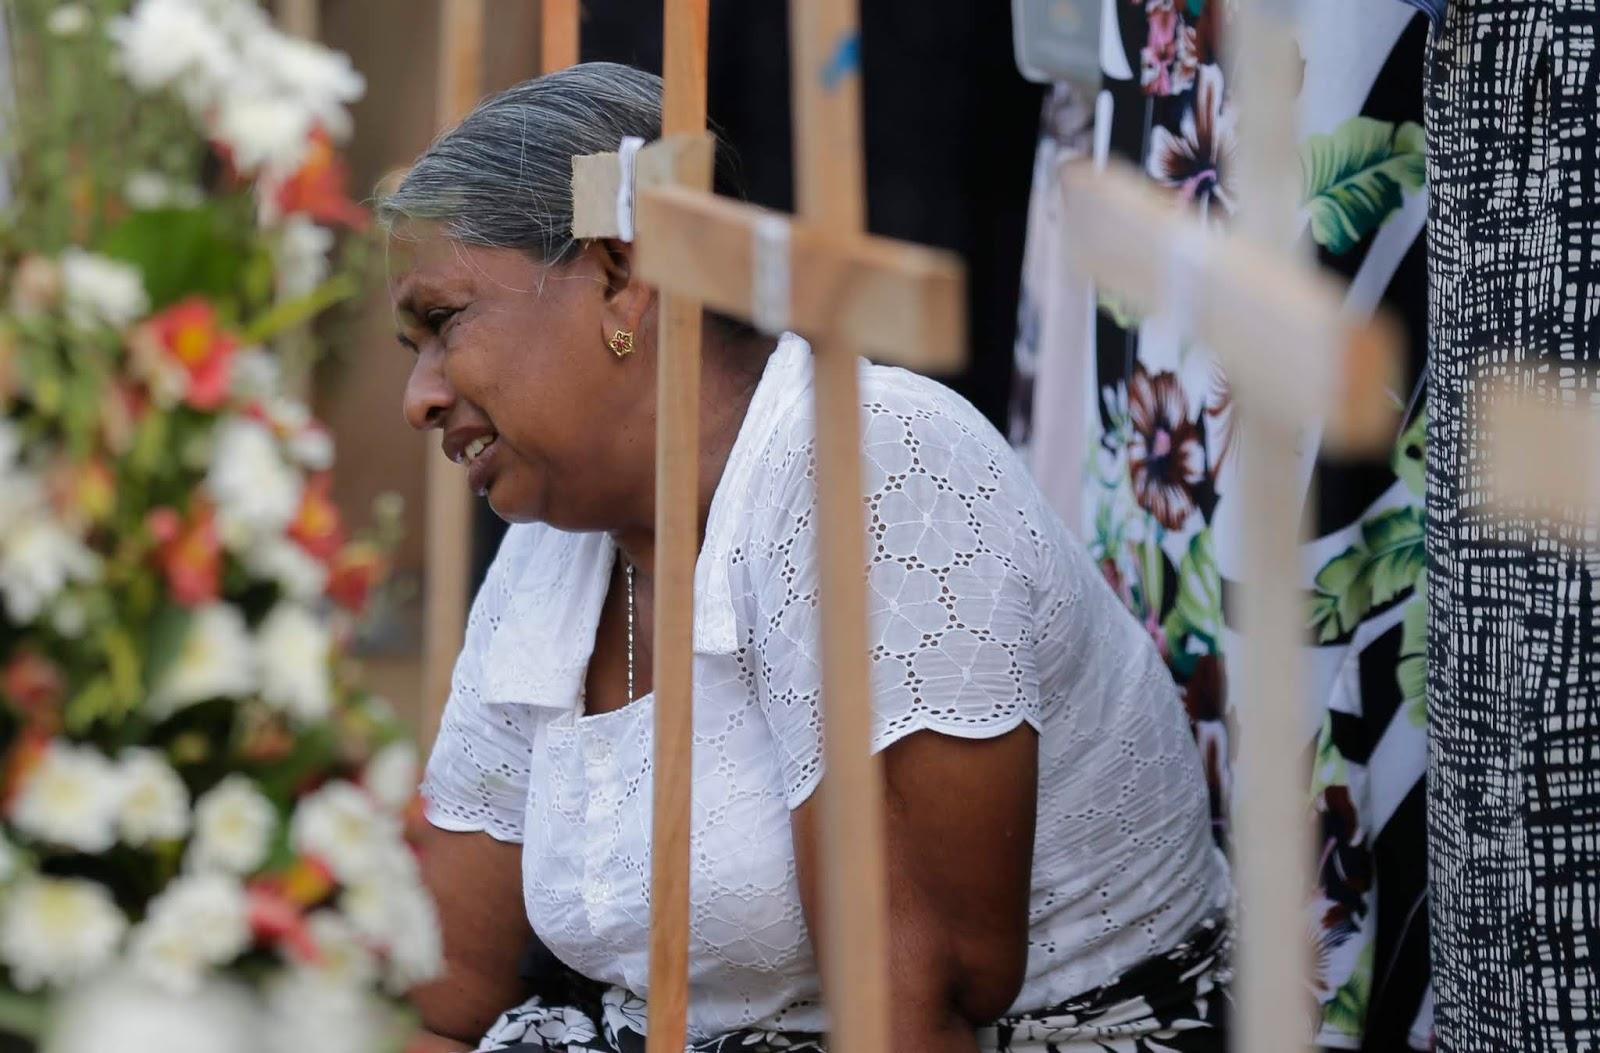 A Sri Lankan woman cries Wednesday as she sits next to the grave of a family member who died in an Easter Sunday bombing at a church in Negombo, Sri Lanka.